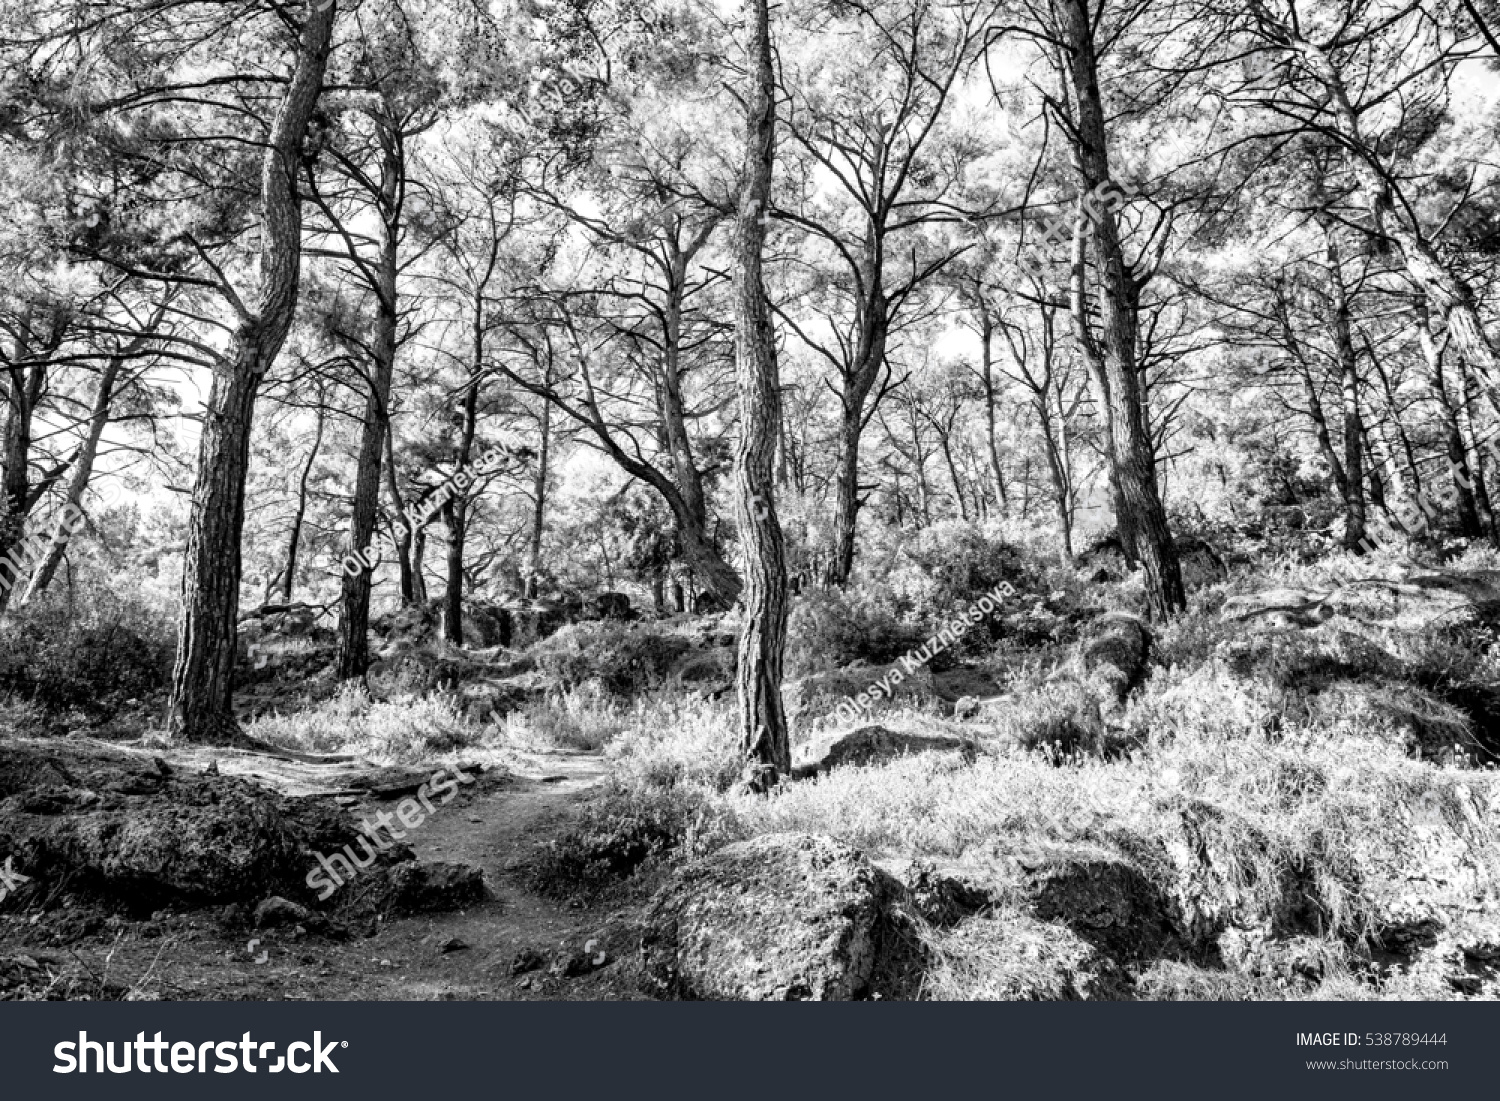 Beautiful scenery in the pine forest black and white image